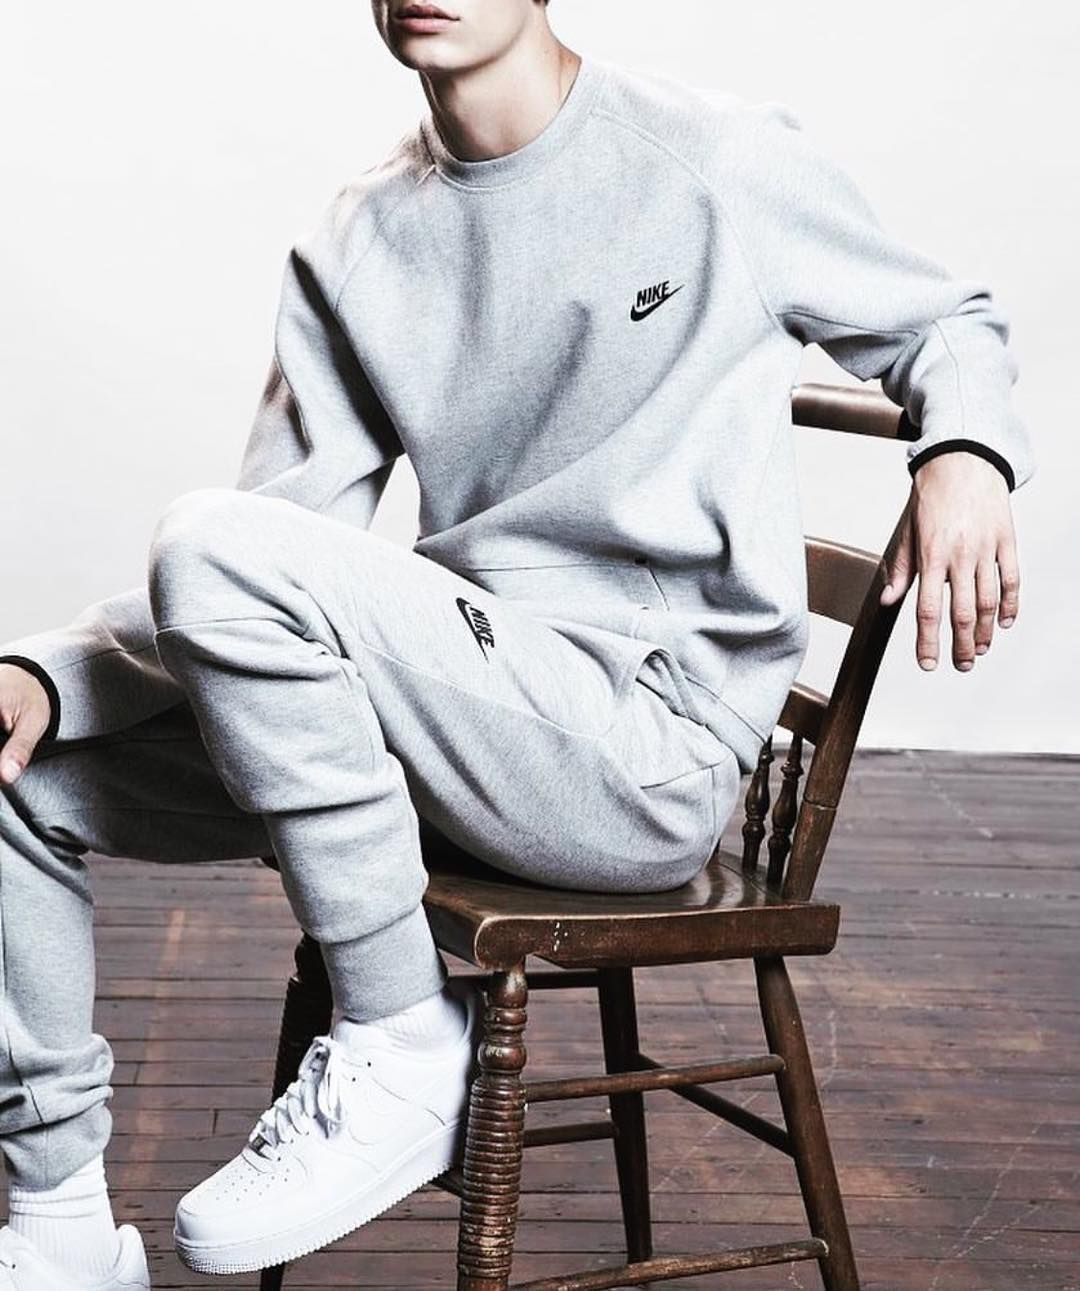 nike air force one sweatsuit